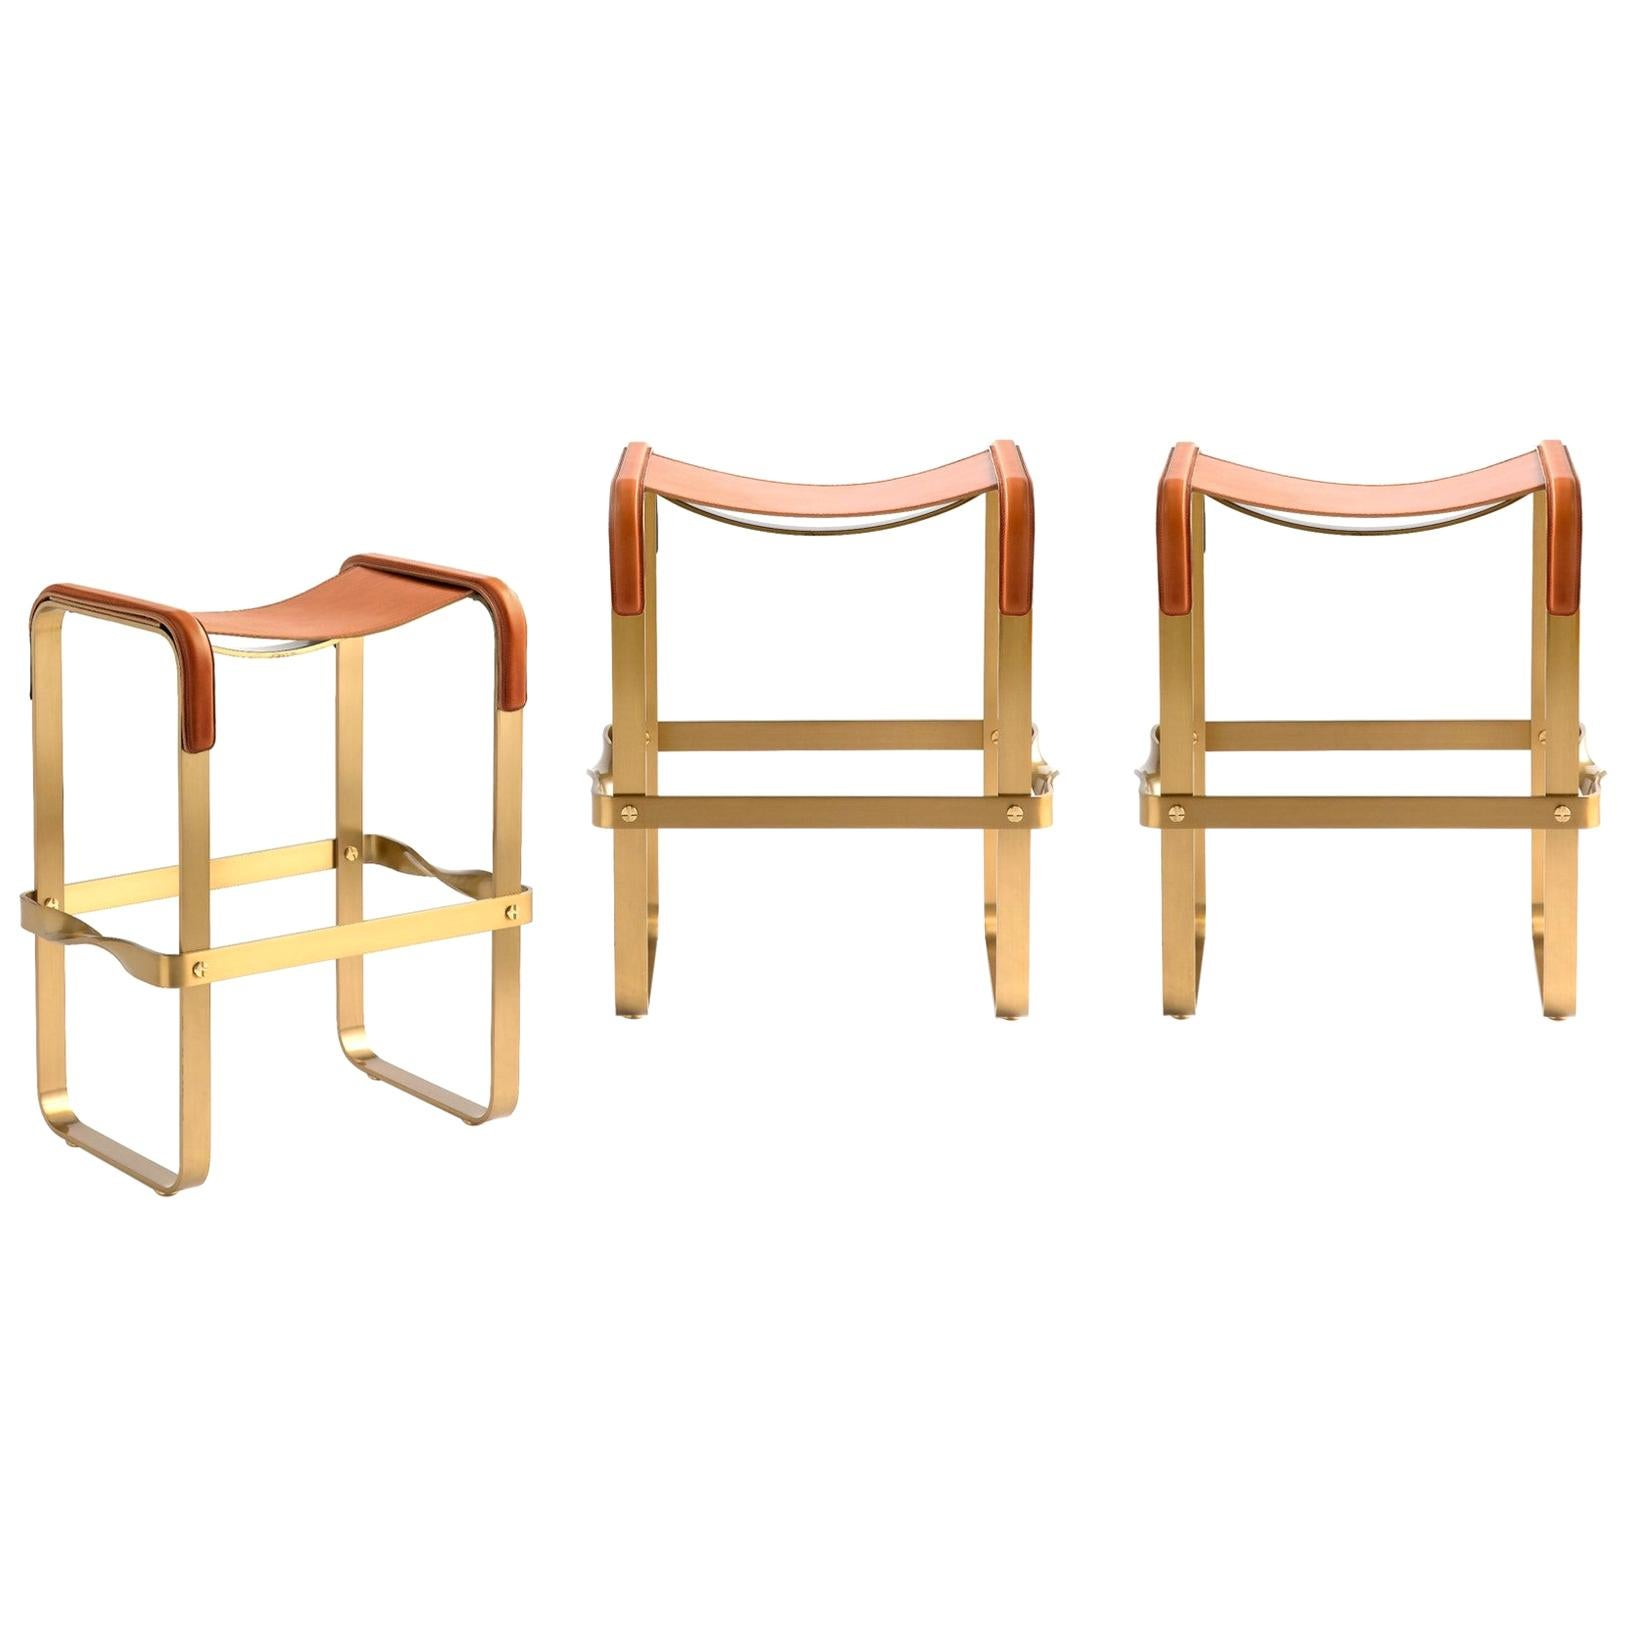 Set of 3 Counter Stool Contemporary Design, Aged Brass & Natural Tobacco Leather